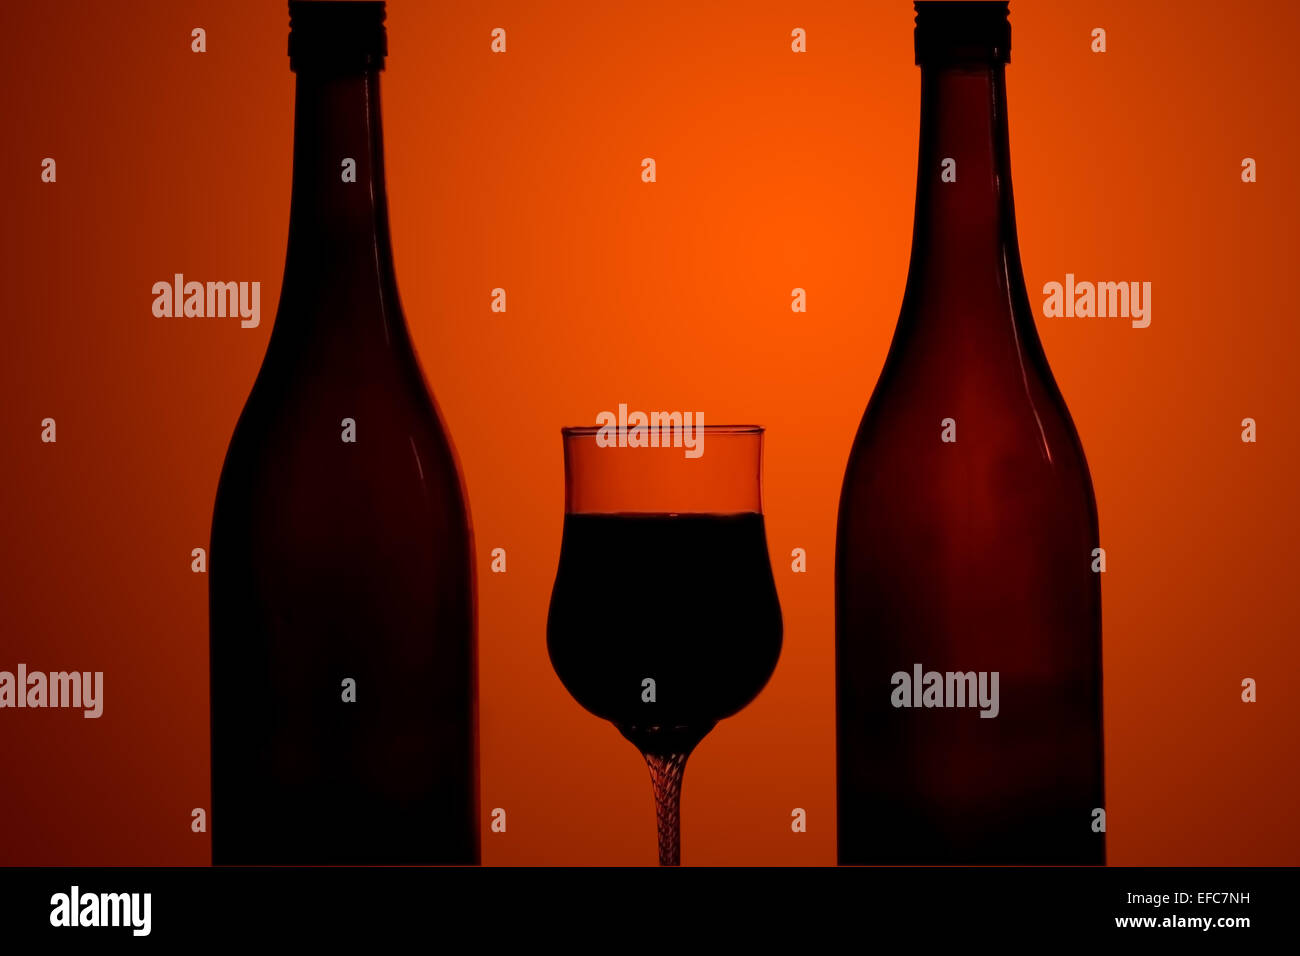 Atmospheric image of two bottles of wine and a wine glass silhouetted against a graduated orange background - Stock Image